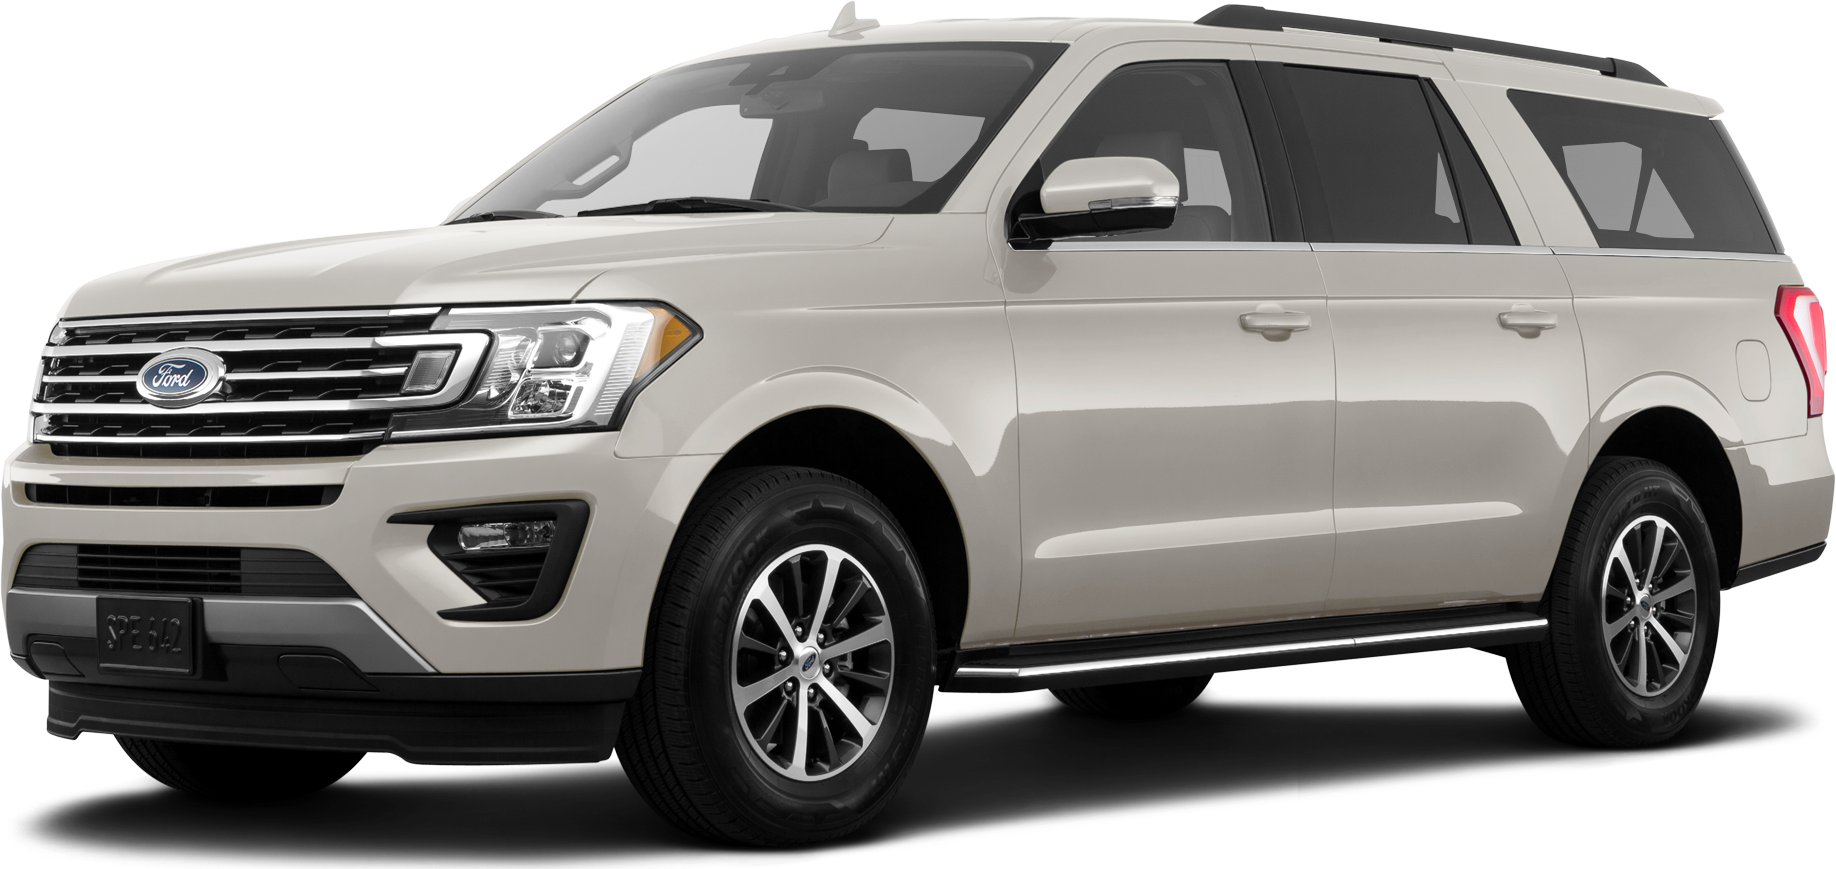 2018 Ford Expedition Max Values Cars For Sale Kelley Blue Book